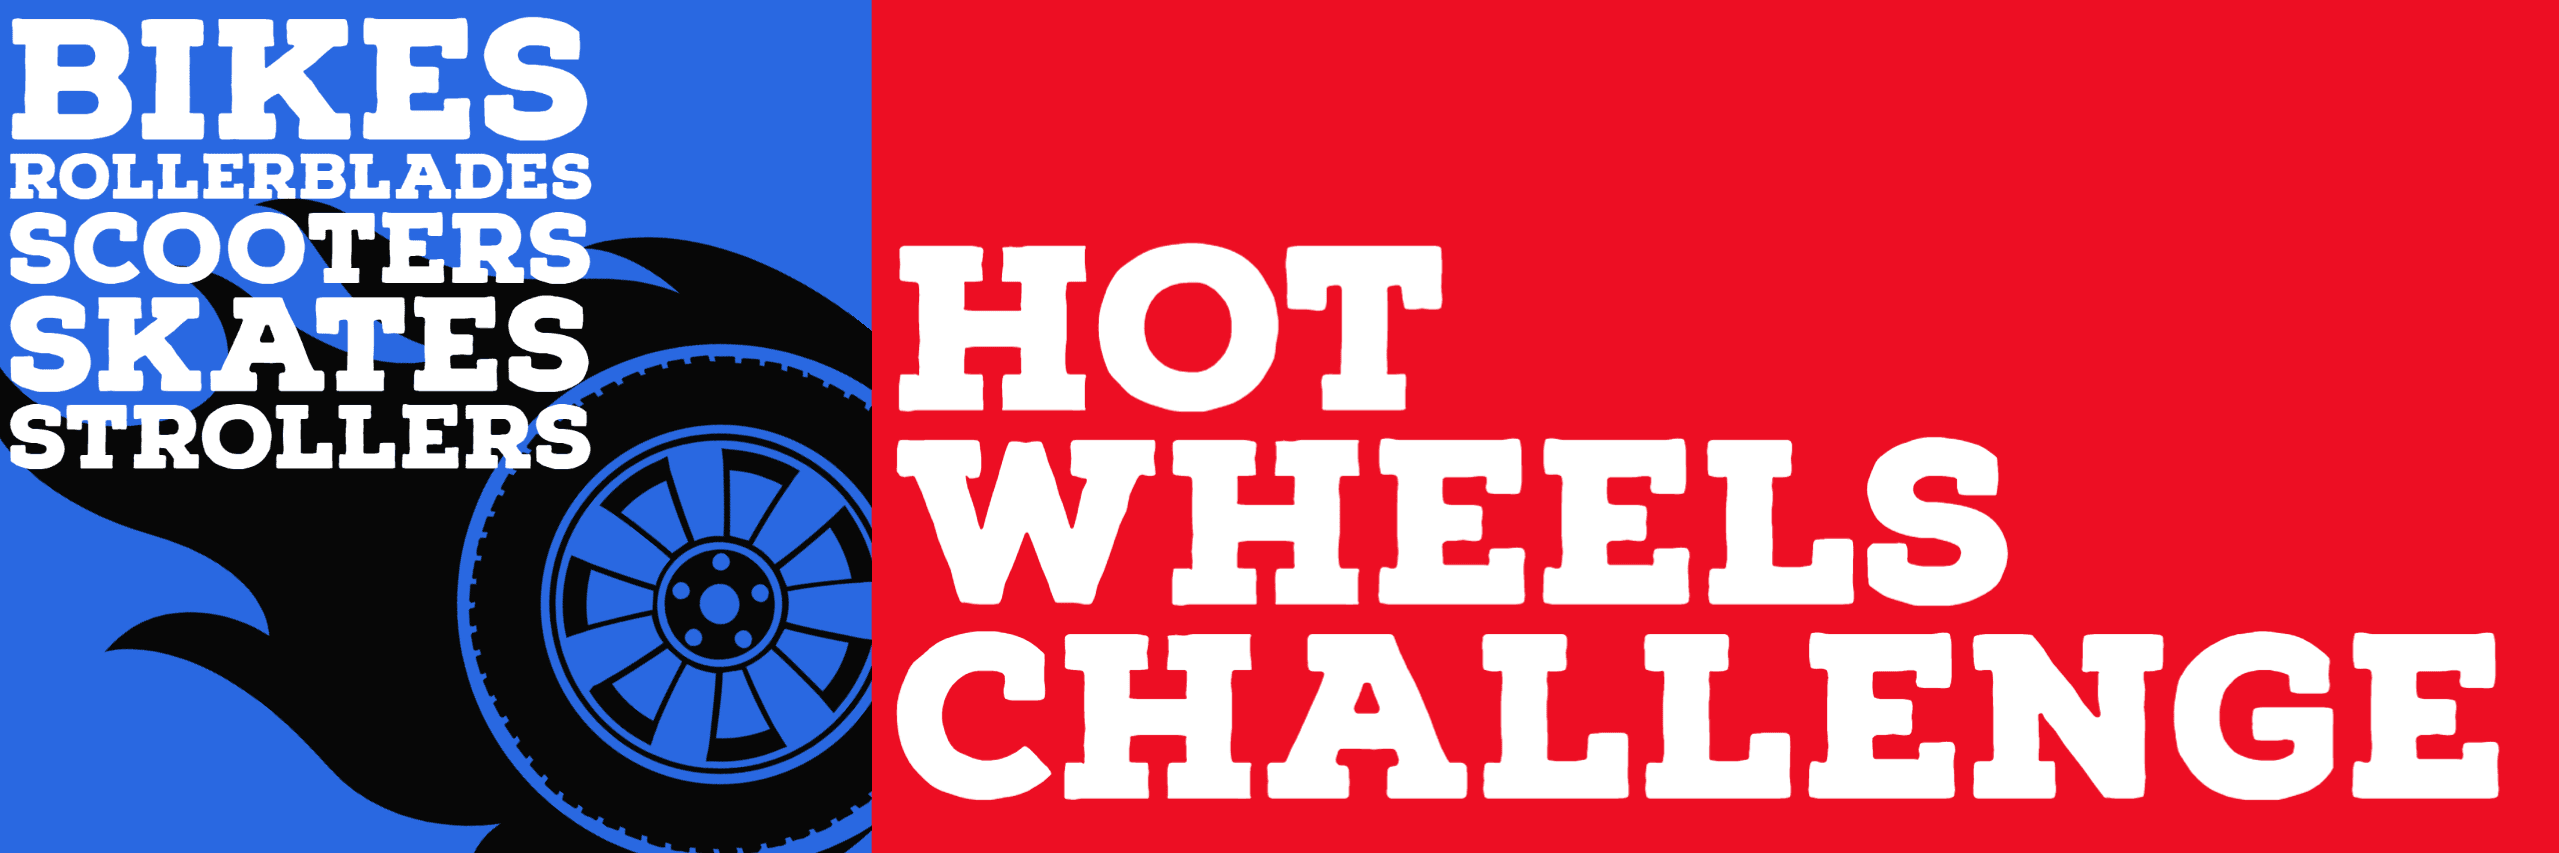 Hot Wheels Challenge Banner